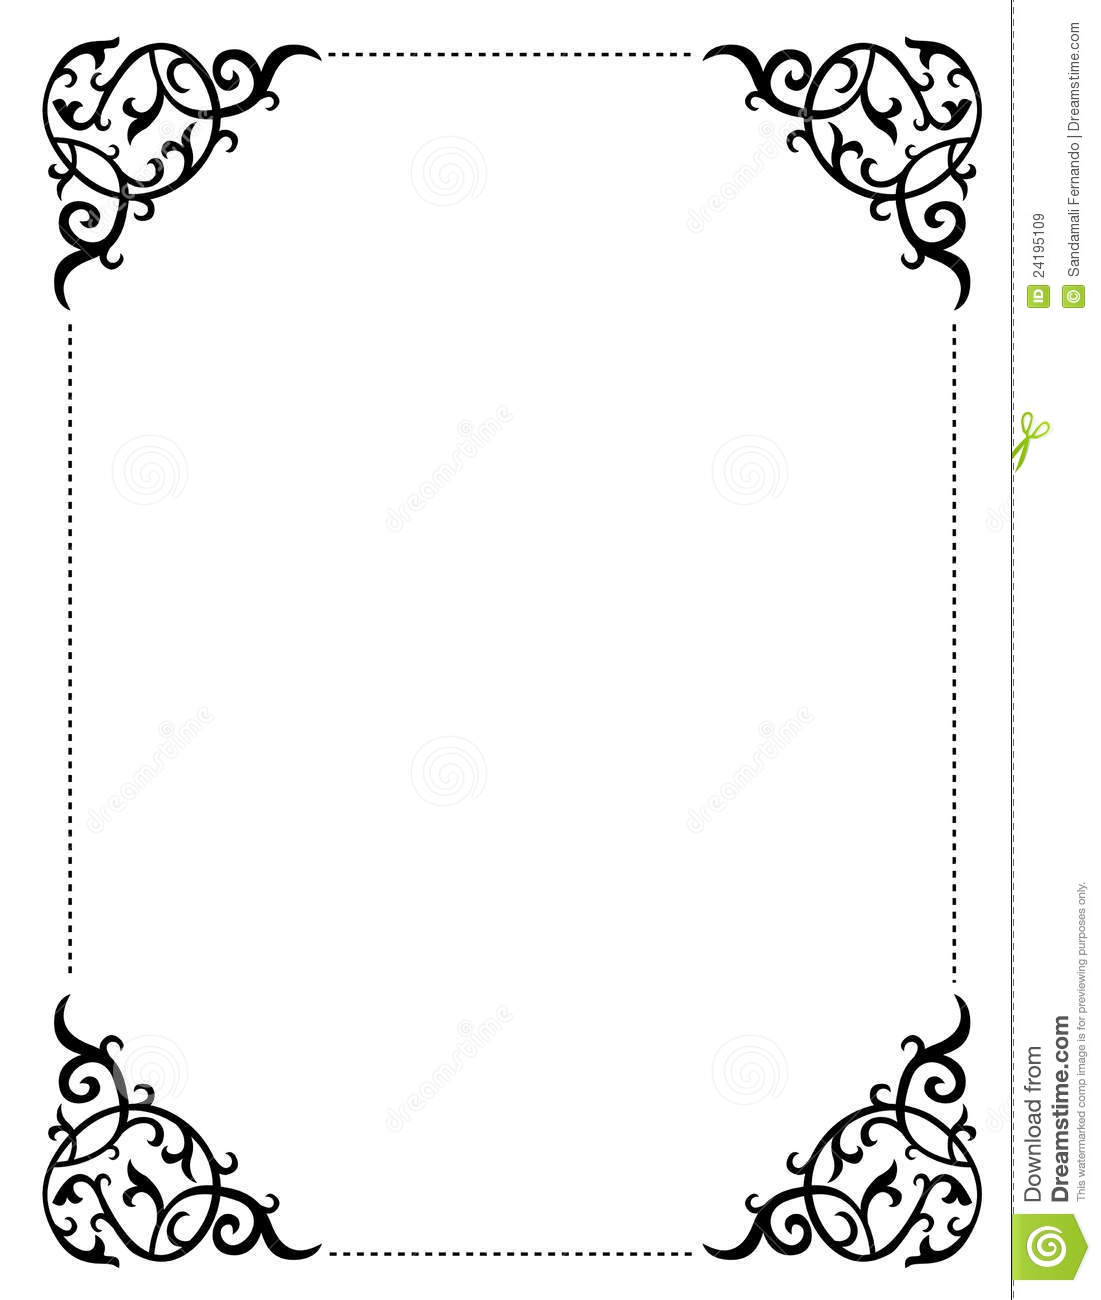 Invitation border frame stock vector illustration of decorative download invitation border frame stock vector illustration of decorative 24195109 stopboris Image collections